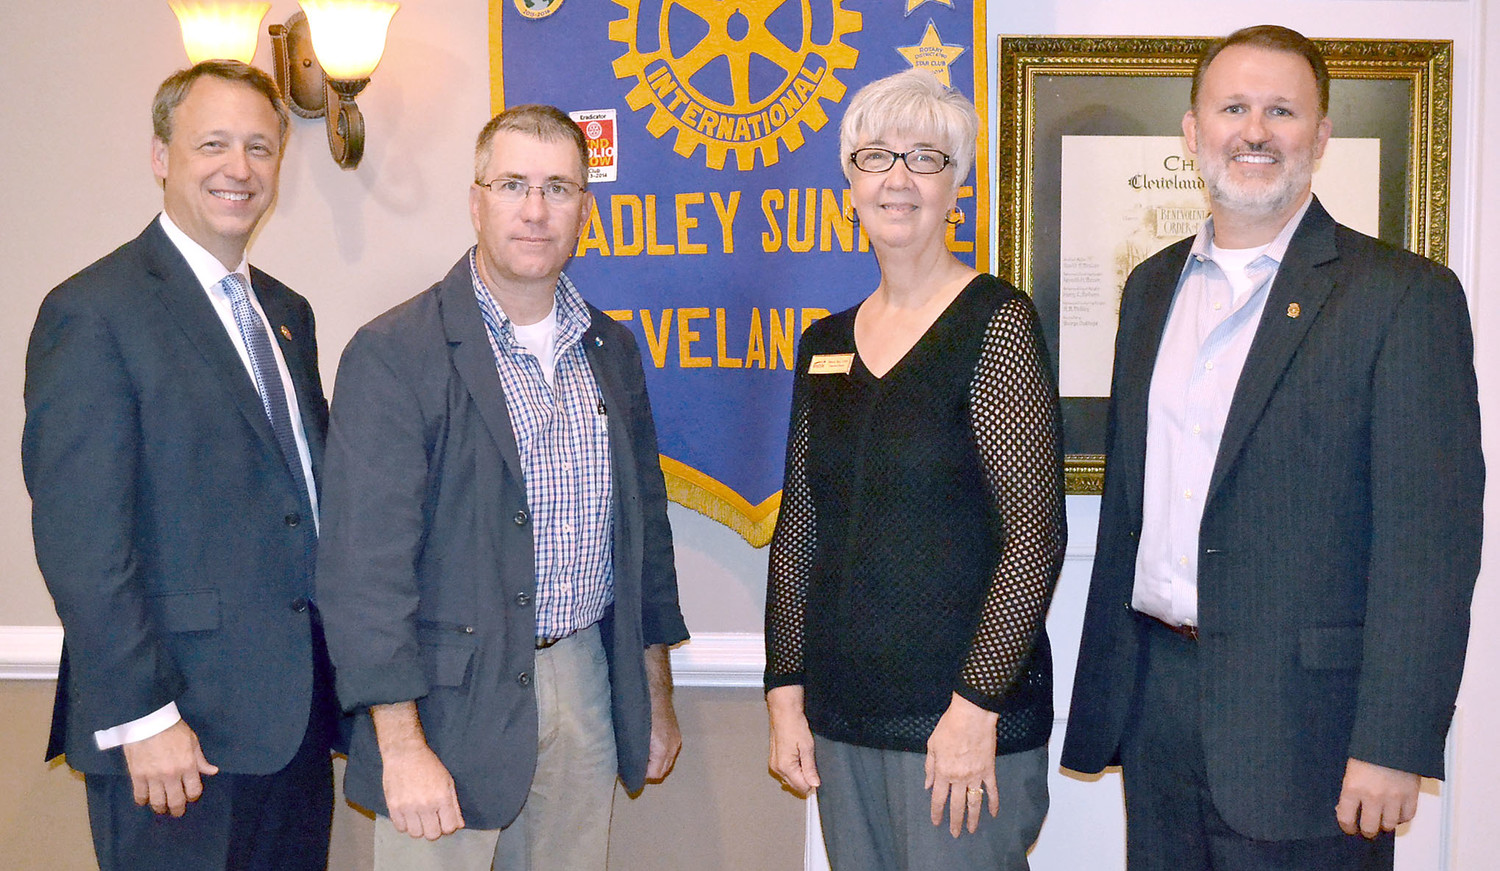 THE BRIDGE and District Attorney General Steve Crump were special guests at Thursday's meeting of the Sunrise Rotary Club. The organization and Crump spoke about the problem of drug overdose. From left are Crump, Scott Elam and Reba Terry of The Bridge, and Sunrise Rotary Club President Matthew Coleman.